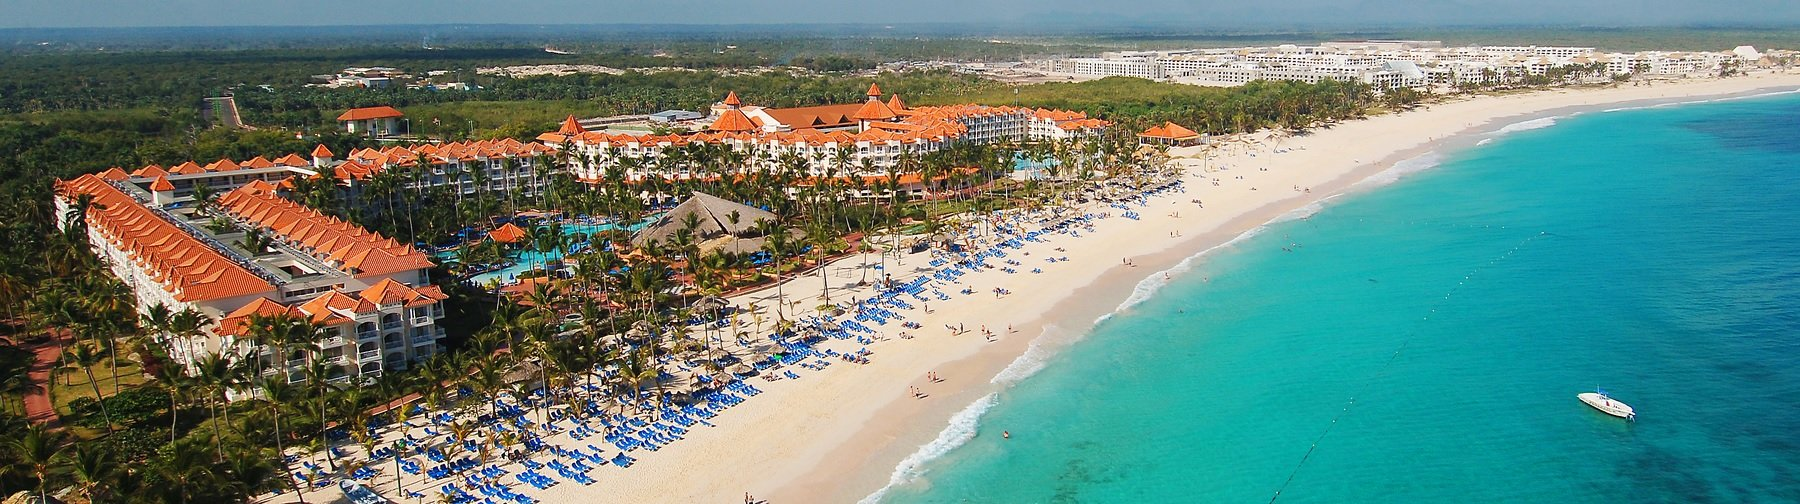 Punta Cana Spring Break 2019 Student Deal – Occidental Caribe